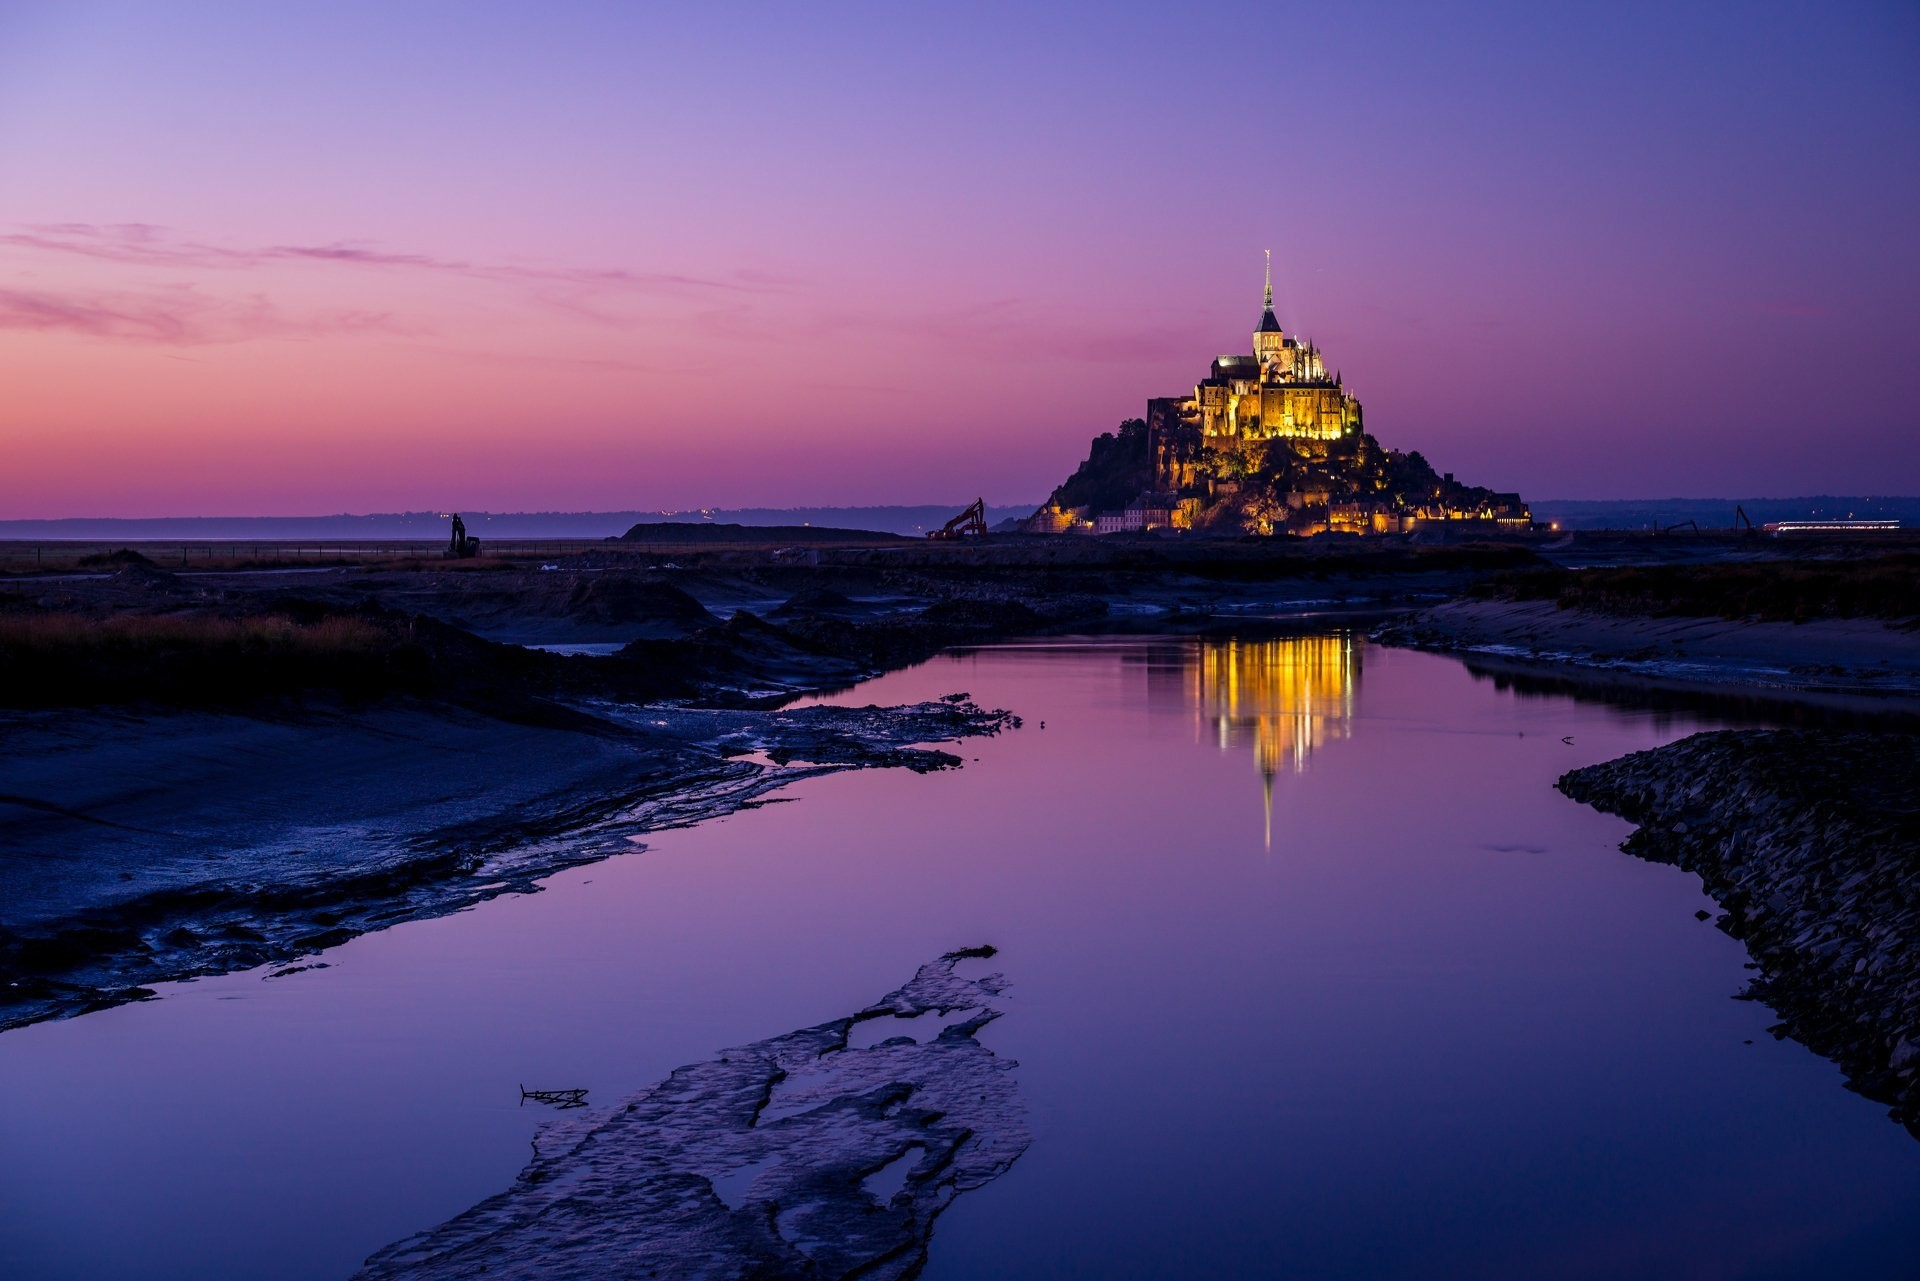 france island fortress mont -saint-michel mont saint-michel mount michael  the archangel